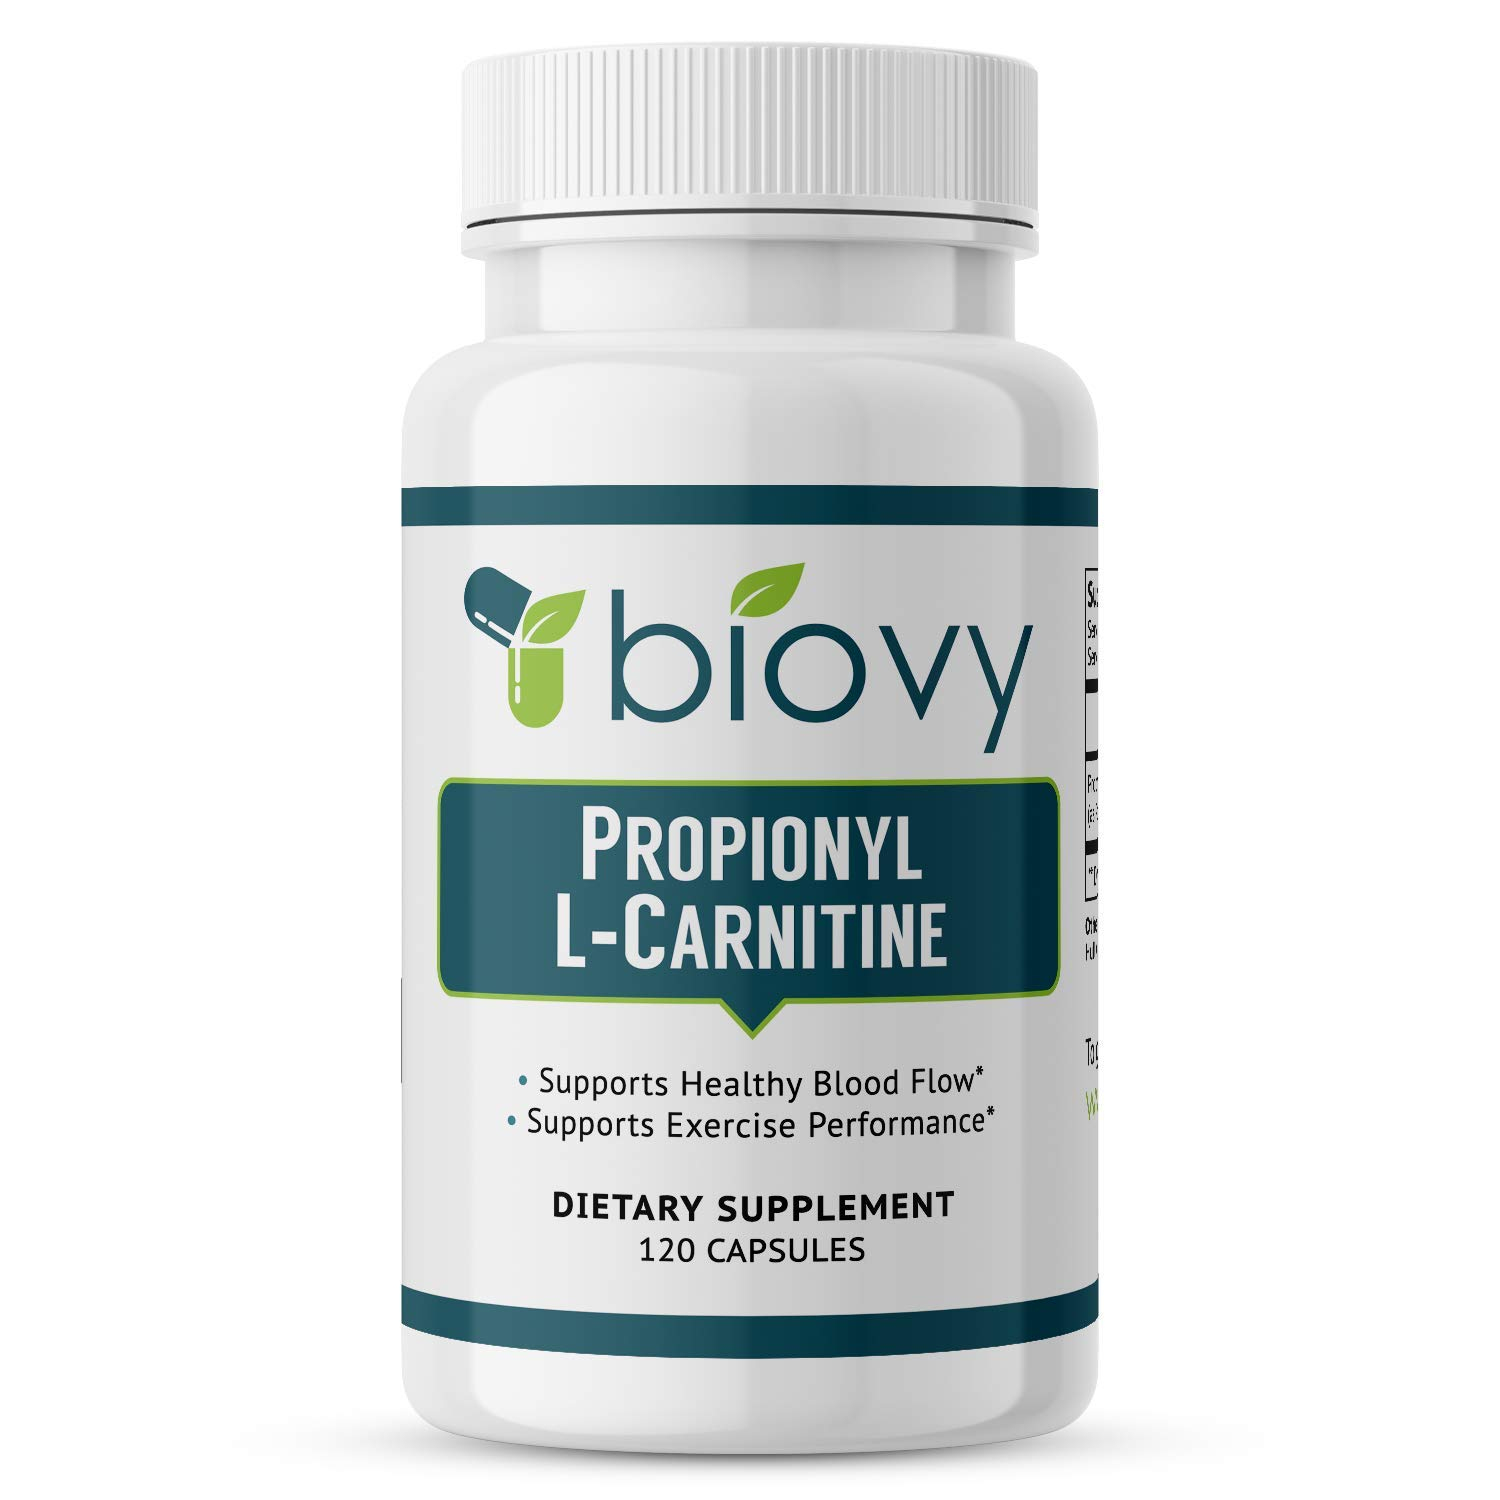 High Absorption Propionyl-L-Carnitine (PLCAR) by Biovy™ - No Artificial Fillers - Effective Propionyl L Carnitine HCL Supplement to Support Blood Circulation - 120 Capsules